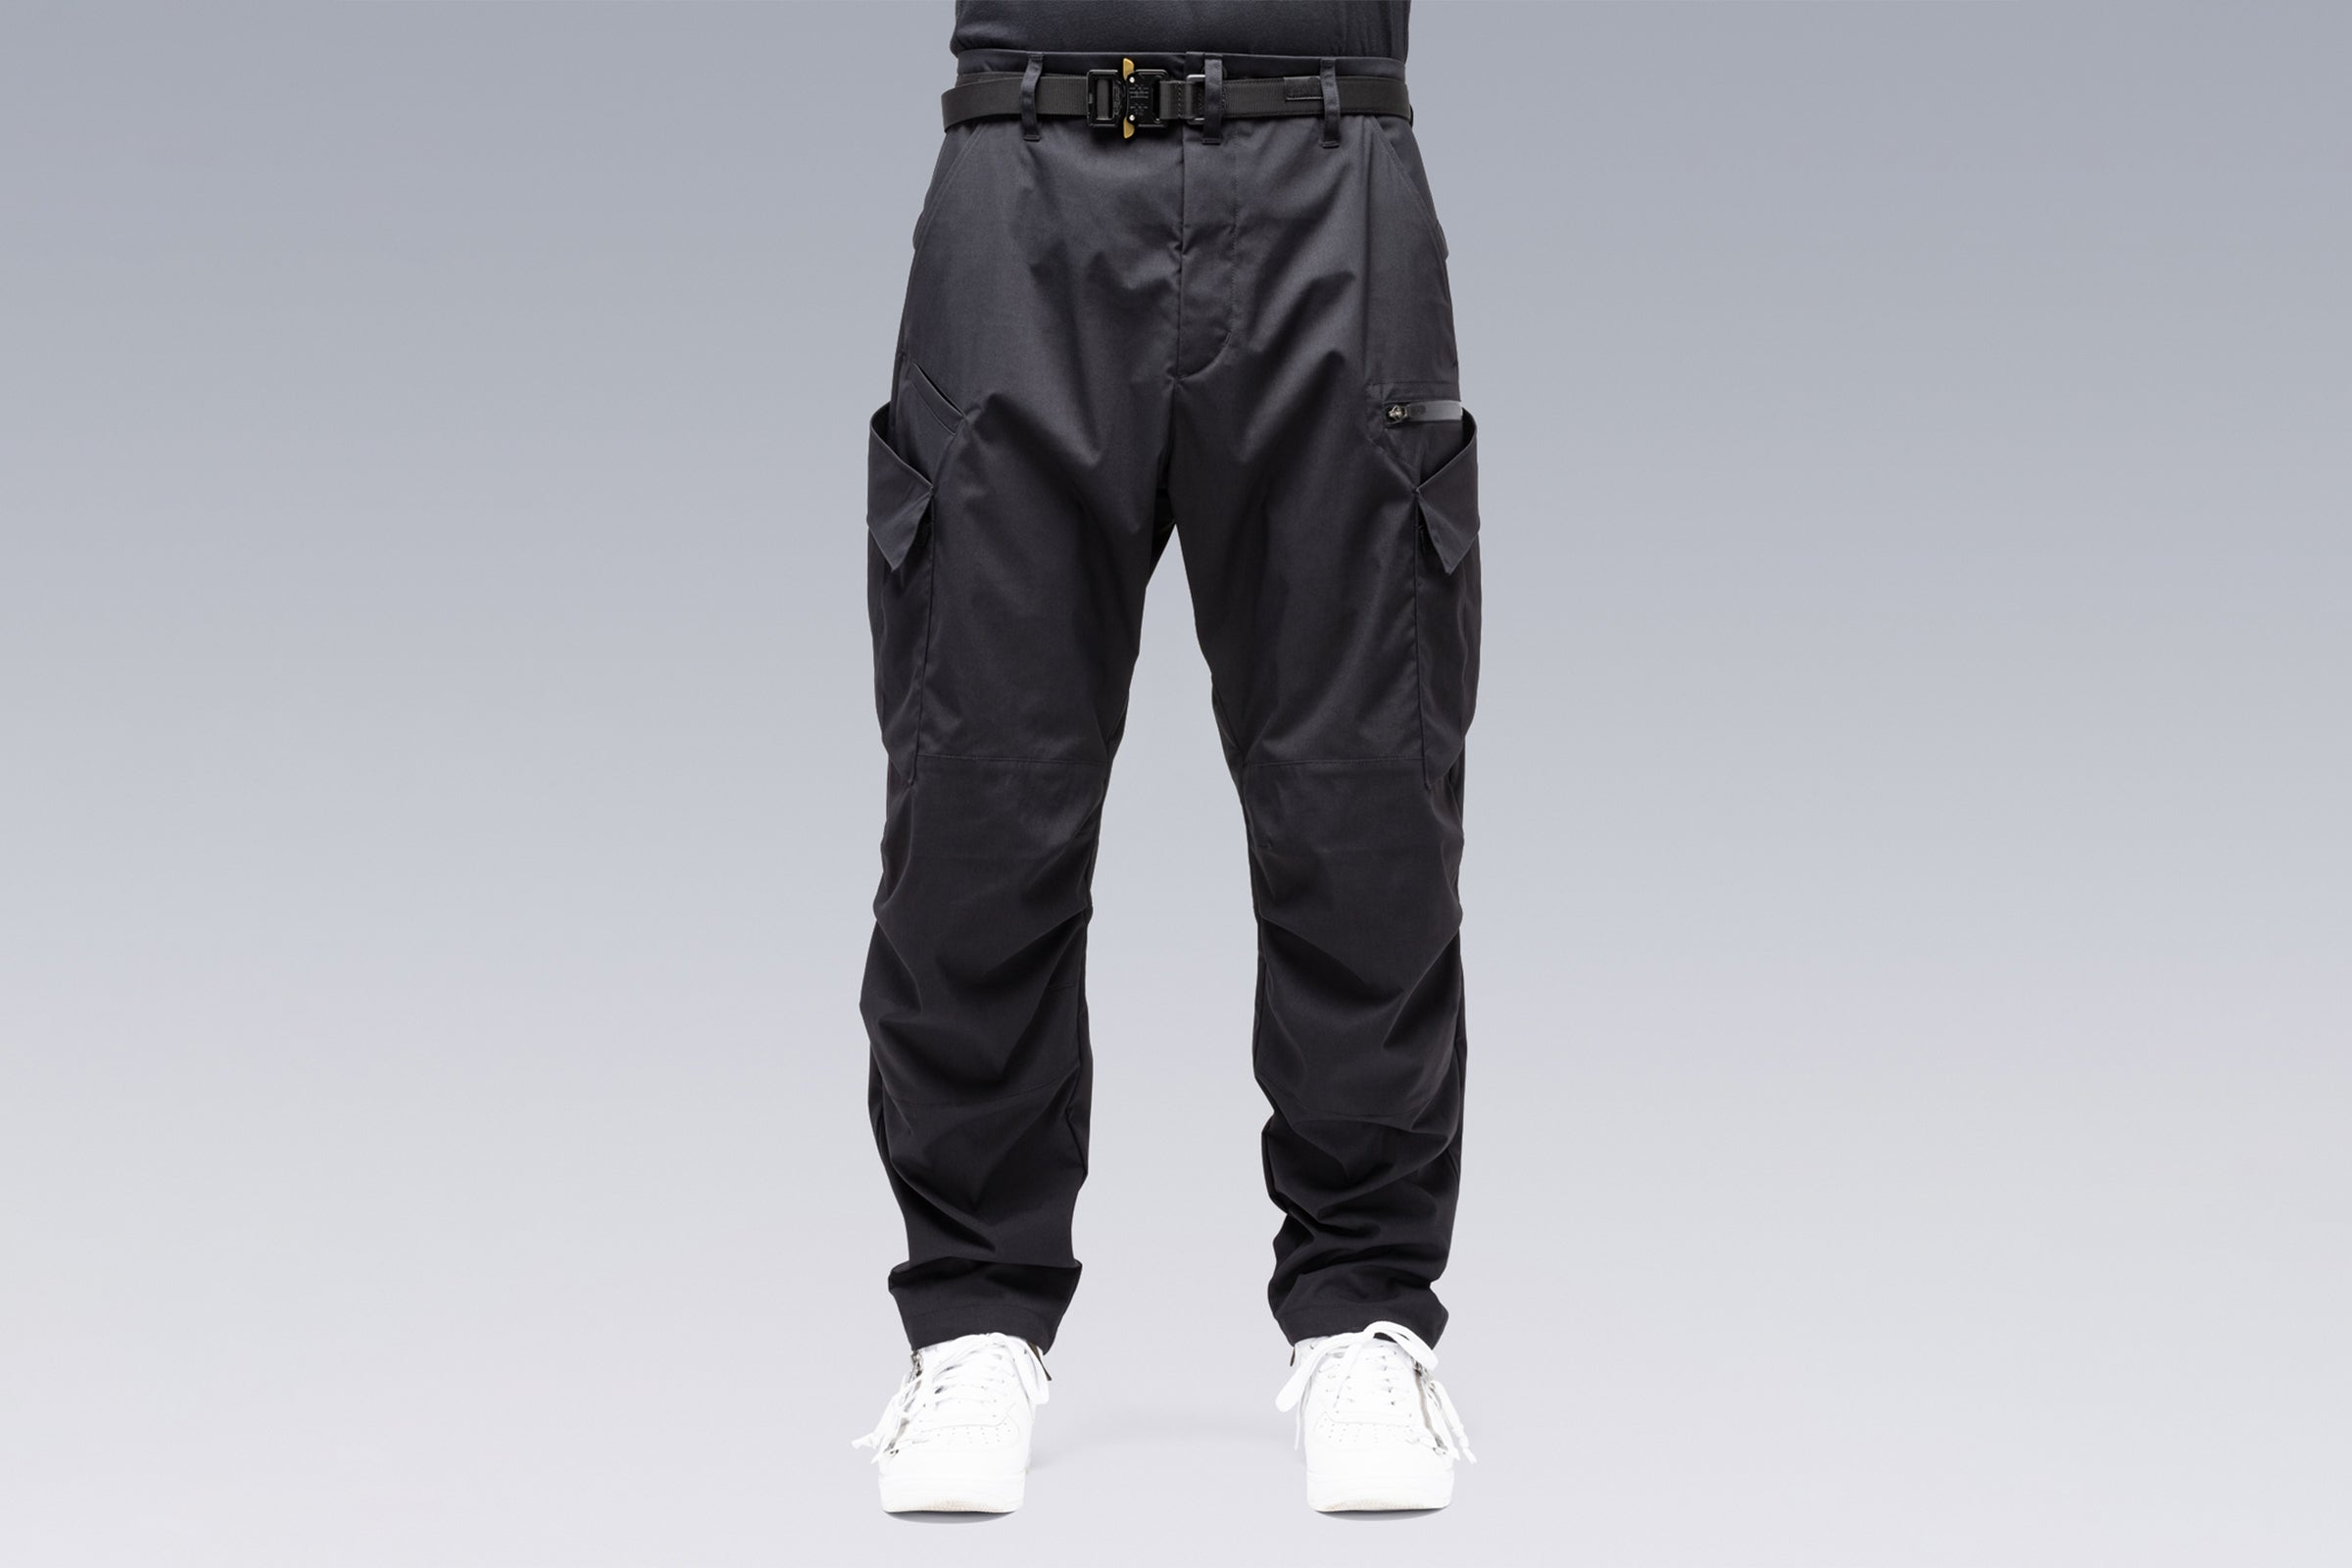 Acronym P34-E Encapsulated Nylon Articulated BDU Trouser